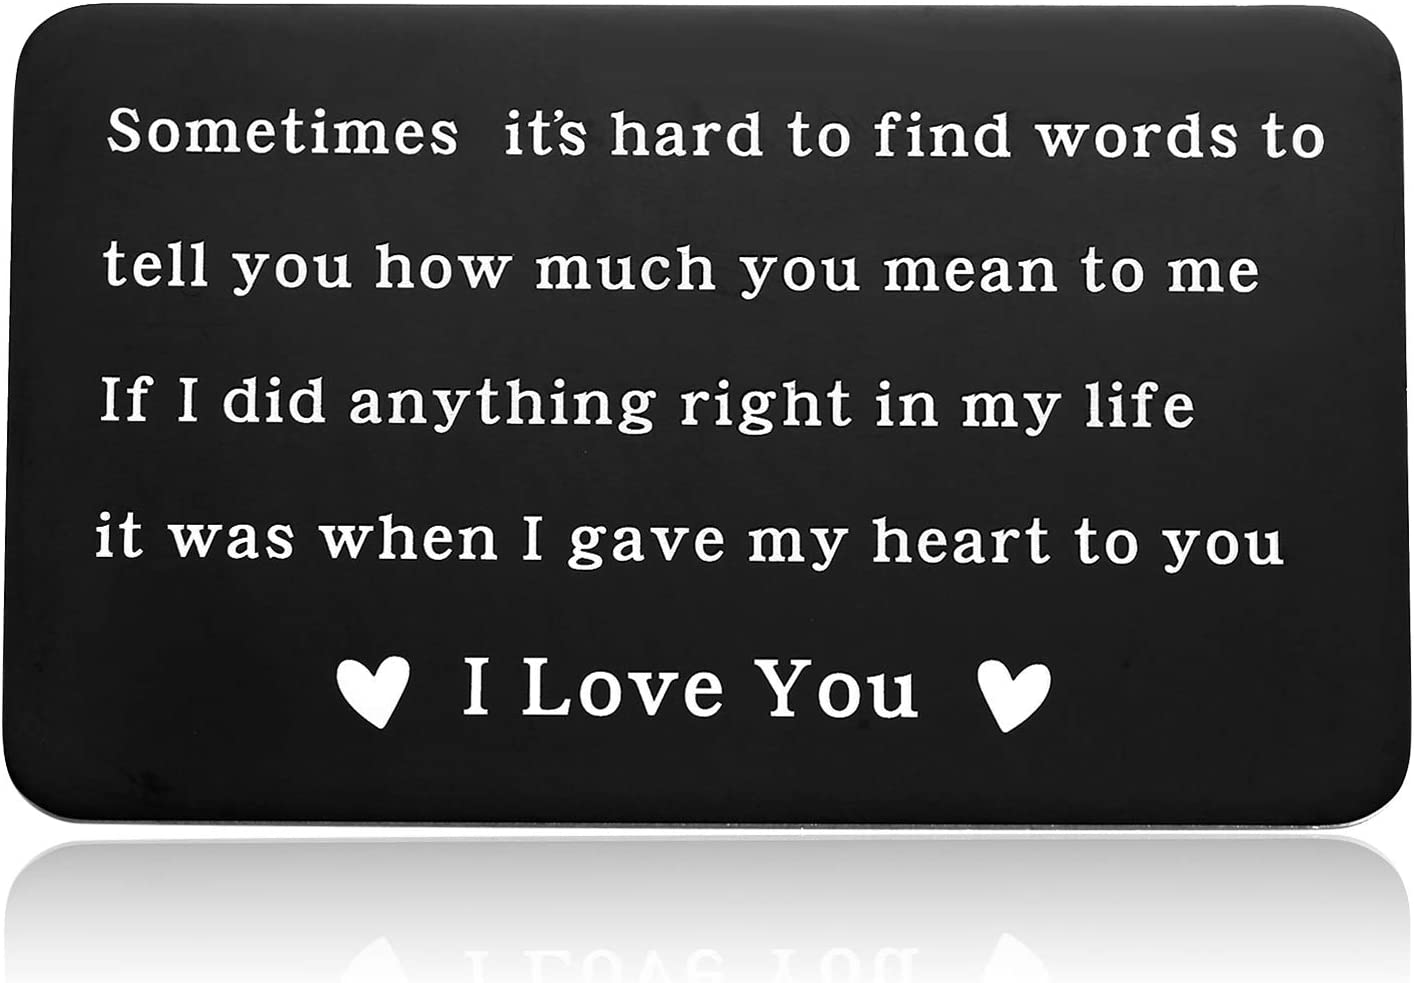 Sentimental Gifts for Boyfriend, Engraved Wallet Insert Card for Men Gift, Sweet Love Note for Husband from Wife-If I Did Anything Right in My Life It Was When I Gave My Heart to You, If I Did Anything Right Gift Cards, If I Did Anything Right Gift Cards